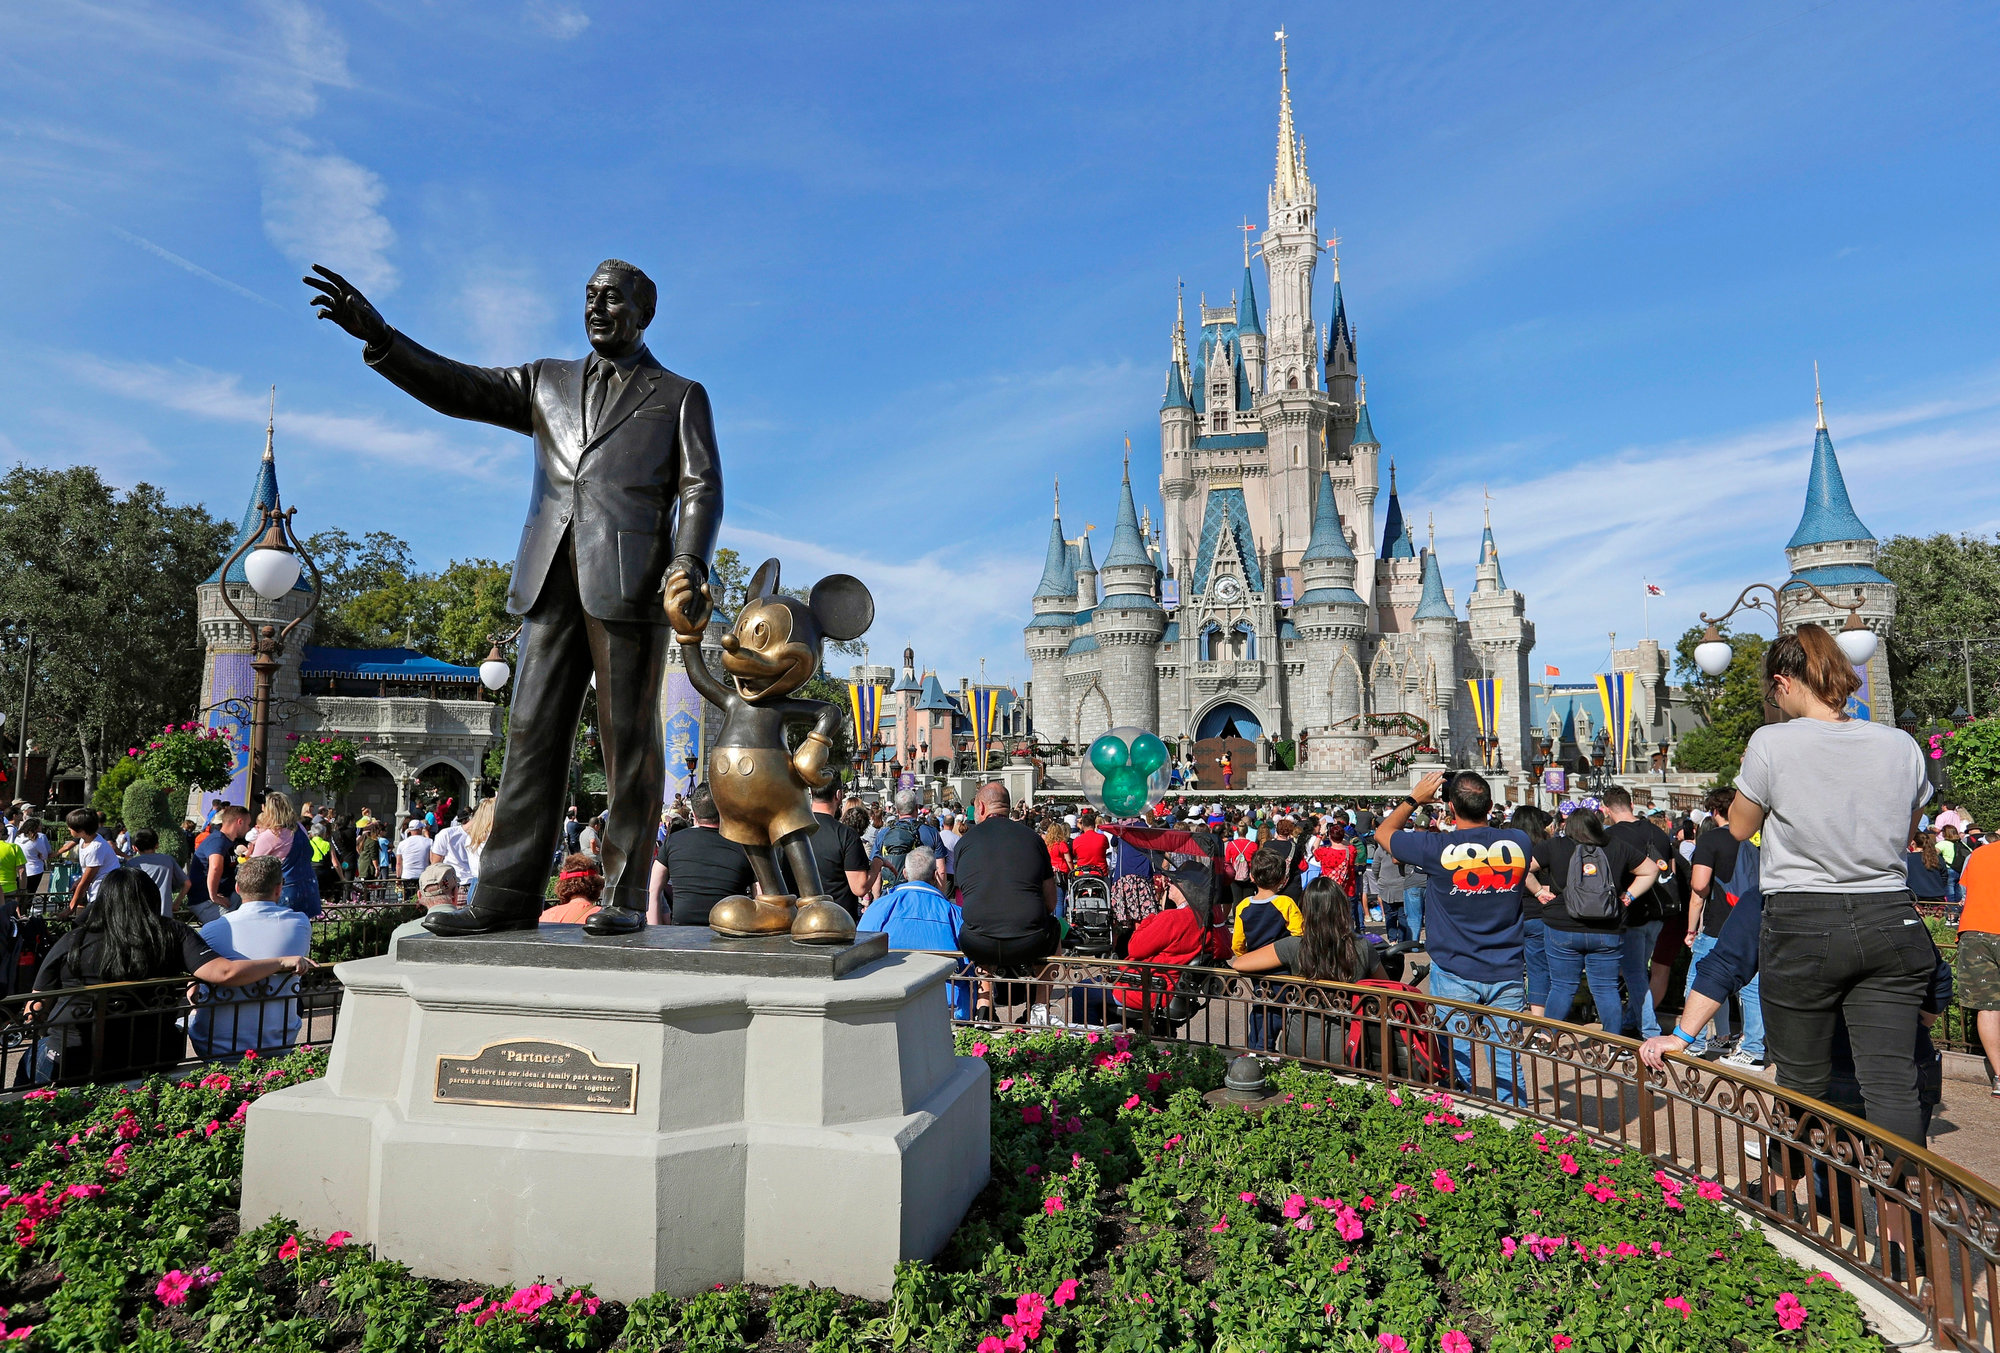 In this Jan. 9, 2019 photo, guests watch a show near a statue of Walt Disney and Micky Mouse in front of the Cinderella Castle at the Magic Kingdom at Walt Disney World in Lake Buena Vista, Florida.